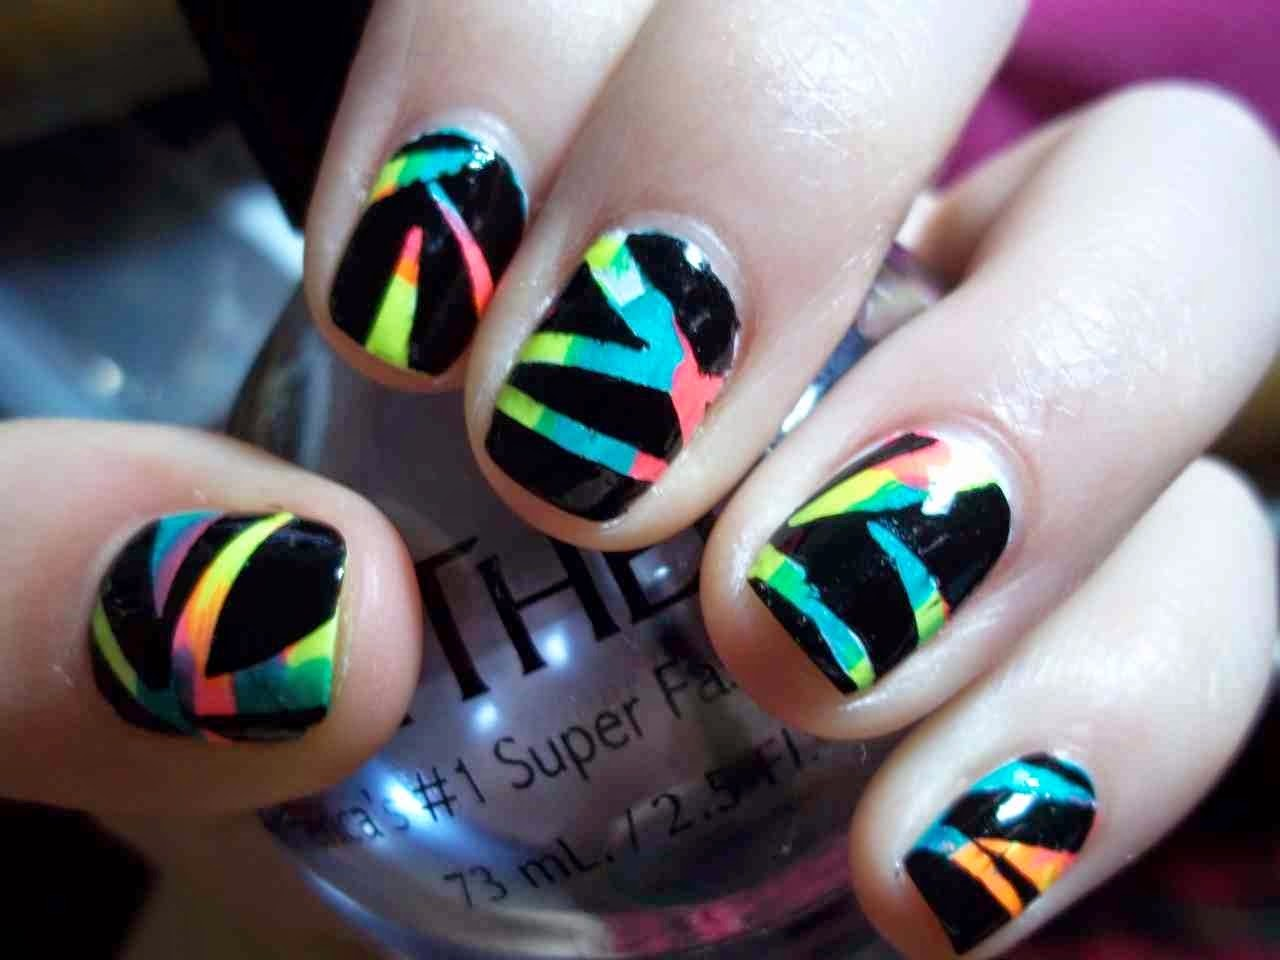 Easy Cute Nail Designs To Do At Home - At home nail art designs for beginners